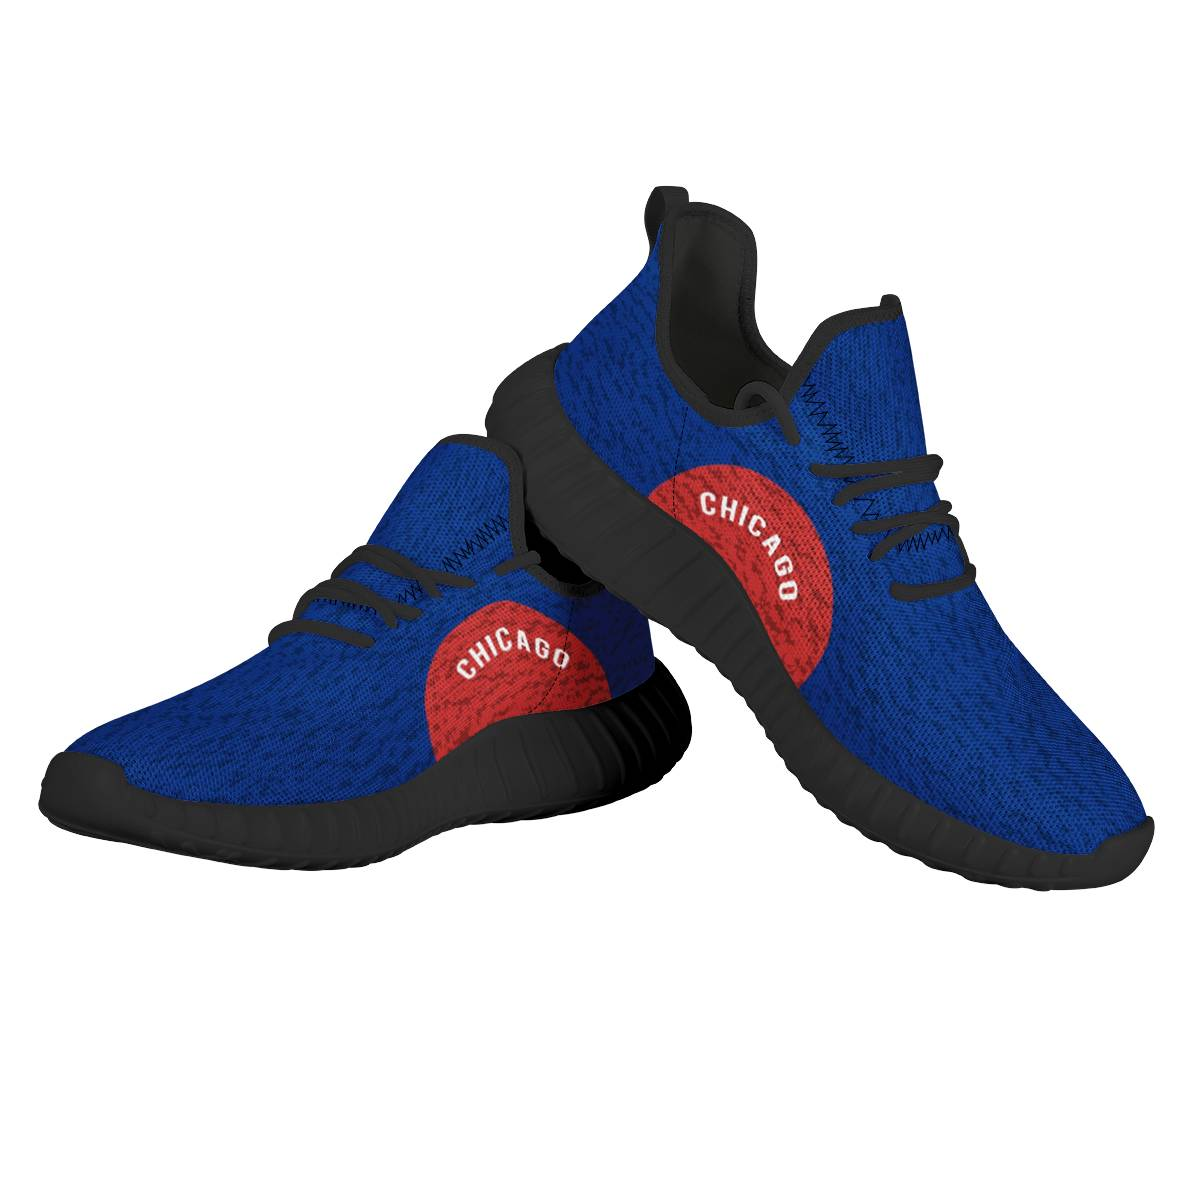 Women's Chicago Cubs Mesh Knit Sneakers/Shoes 013